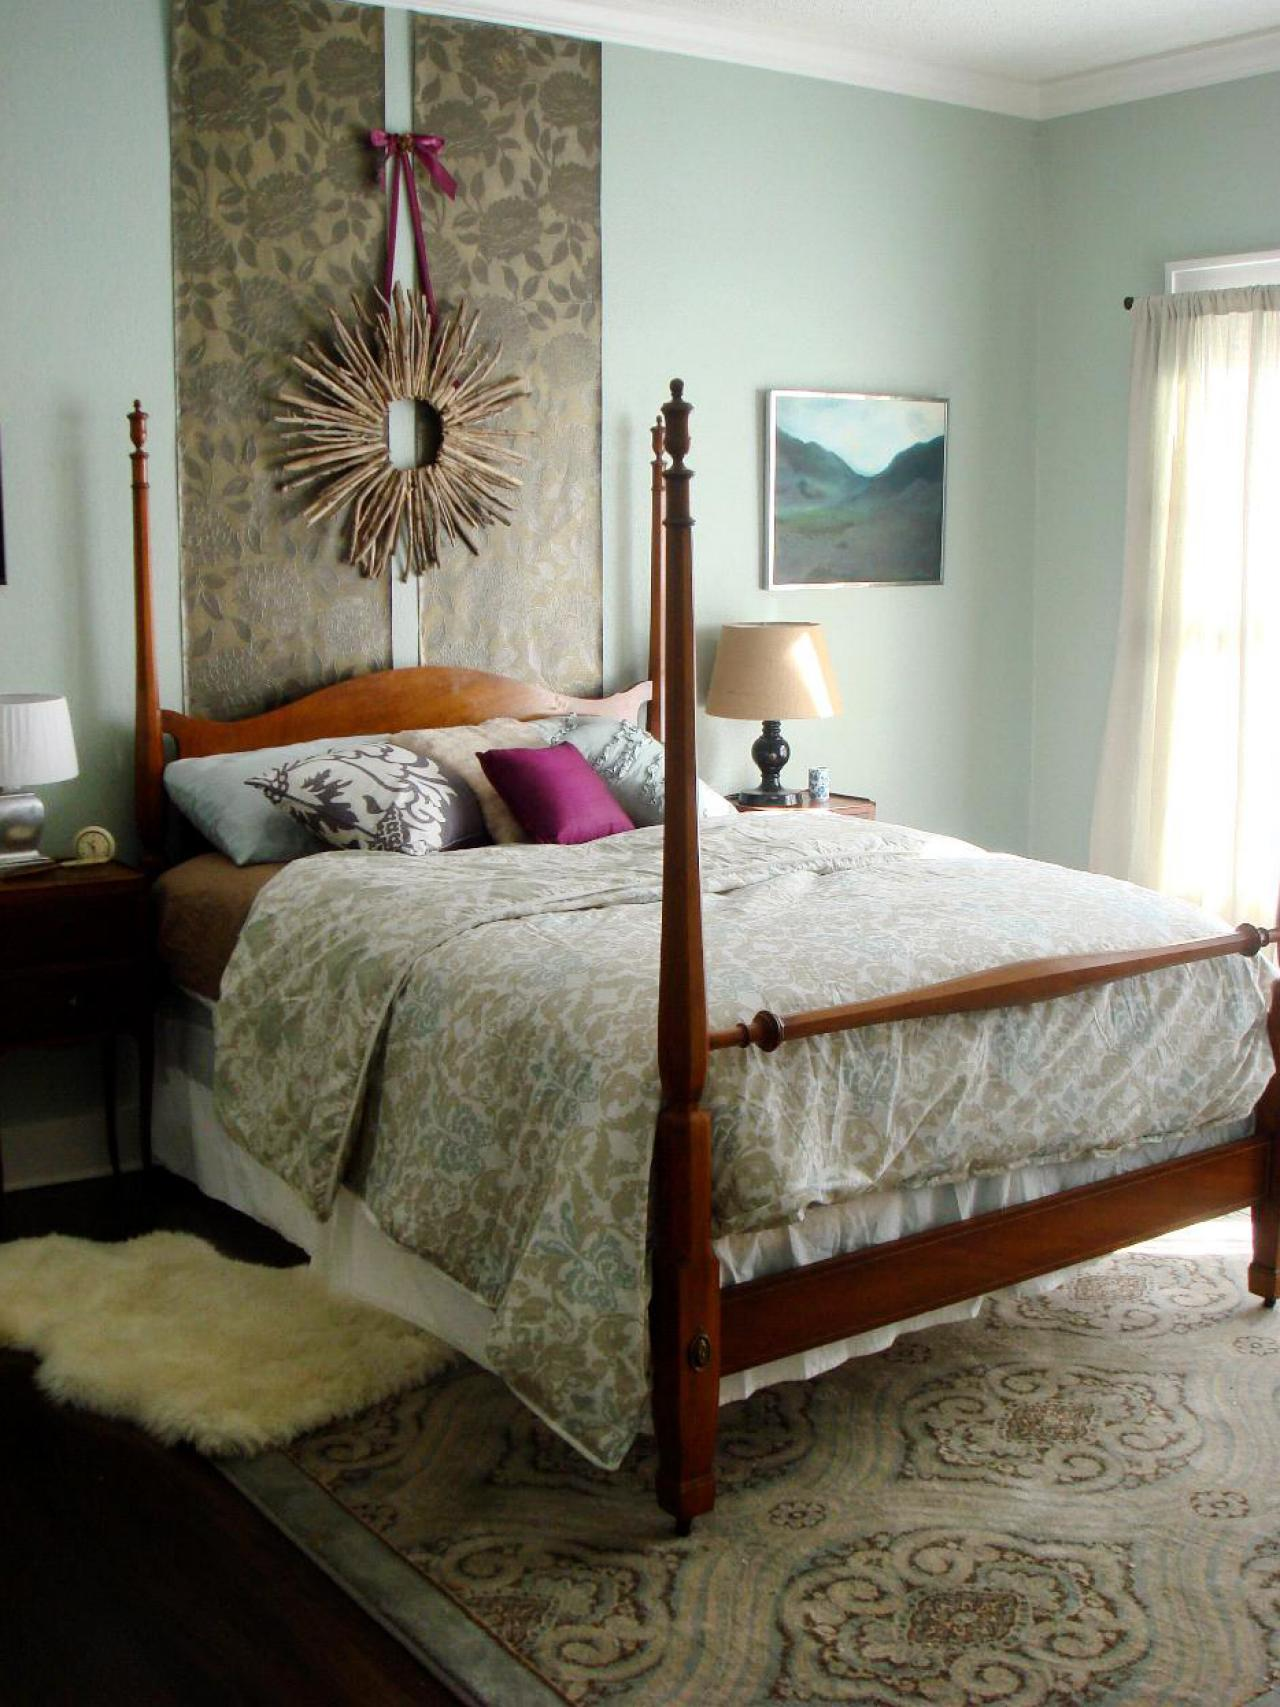 17 budget headboards bedrooms bedroom decorating ideas hgtv. Black Bedroom Furniture Sets. Home Design Ideas